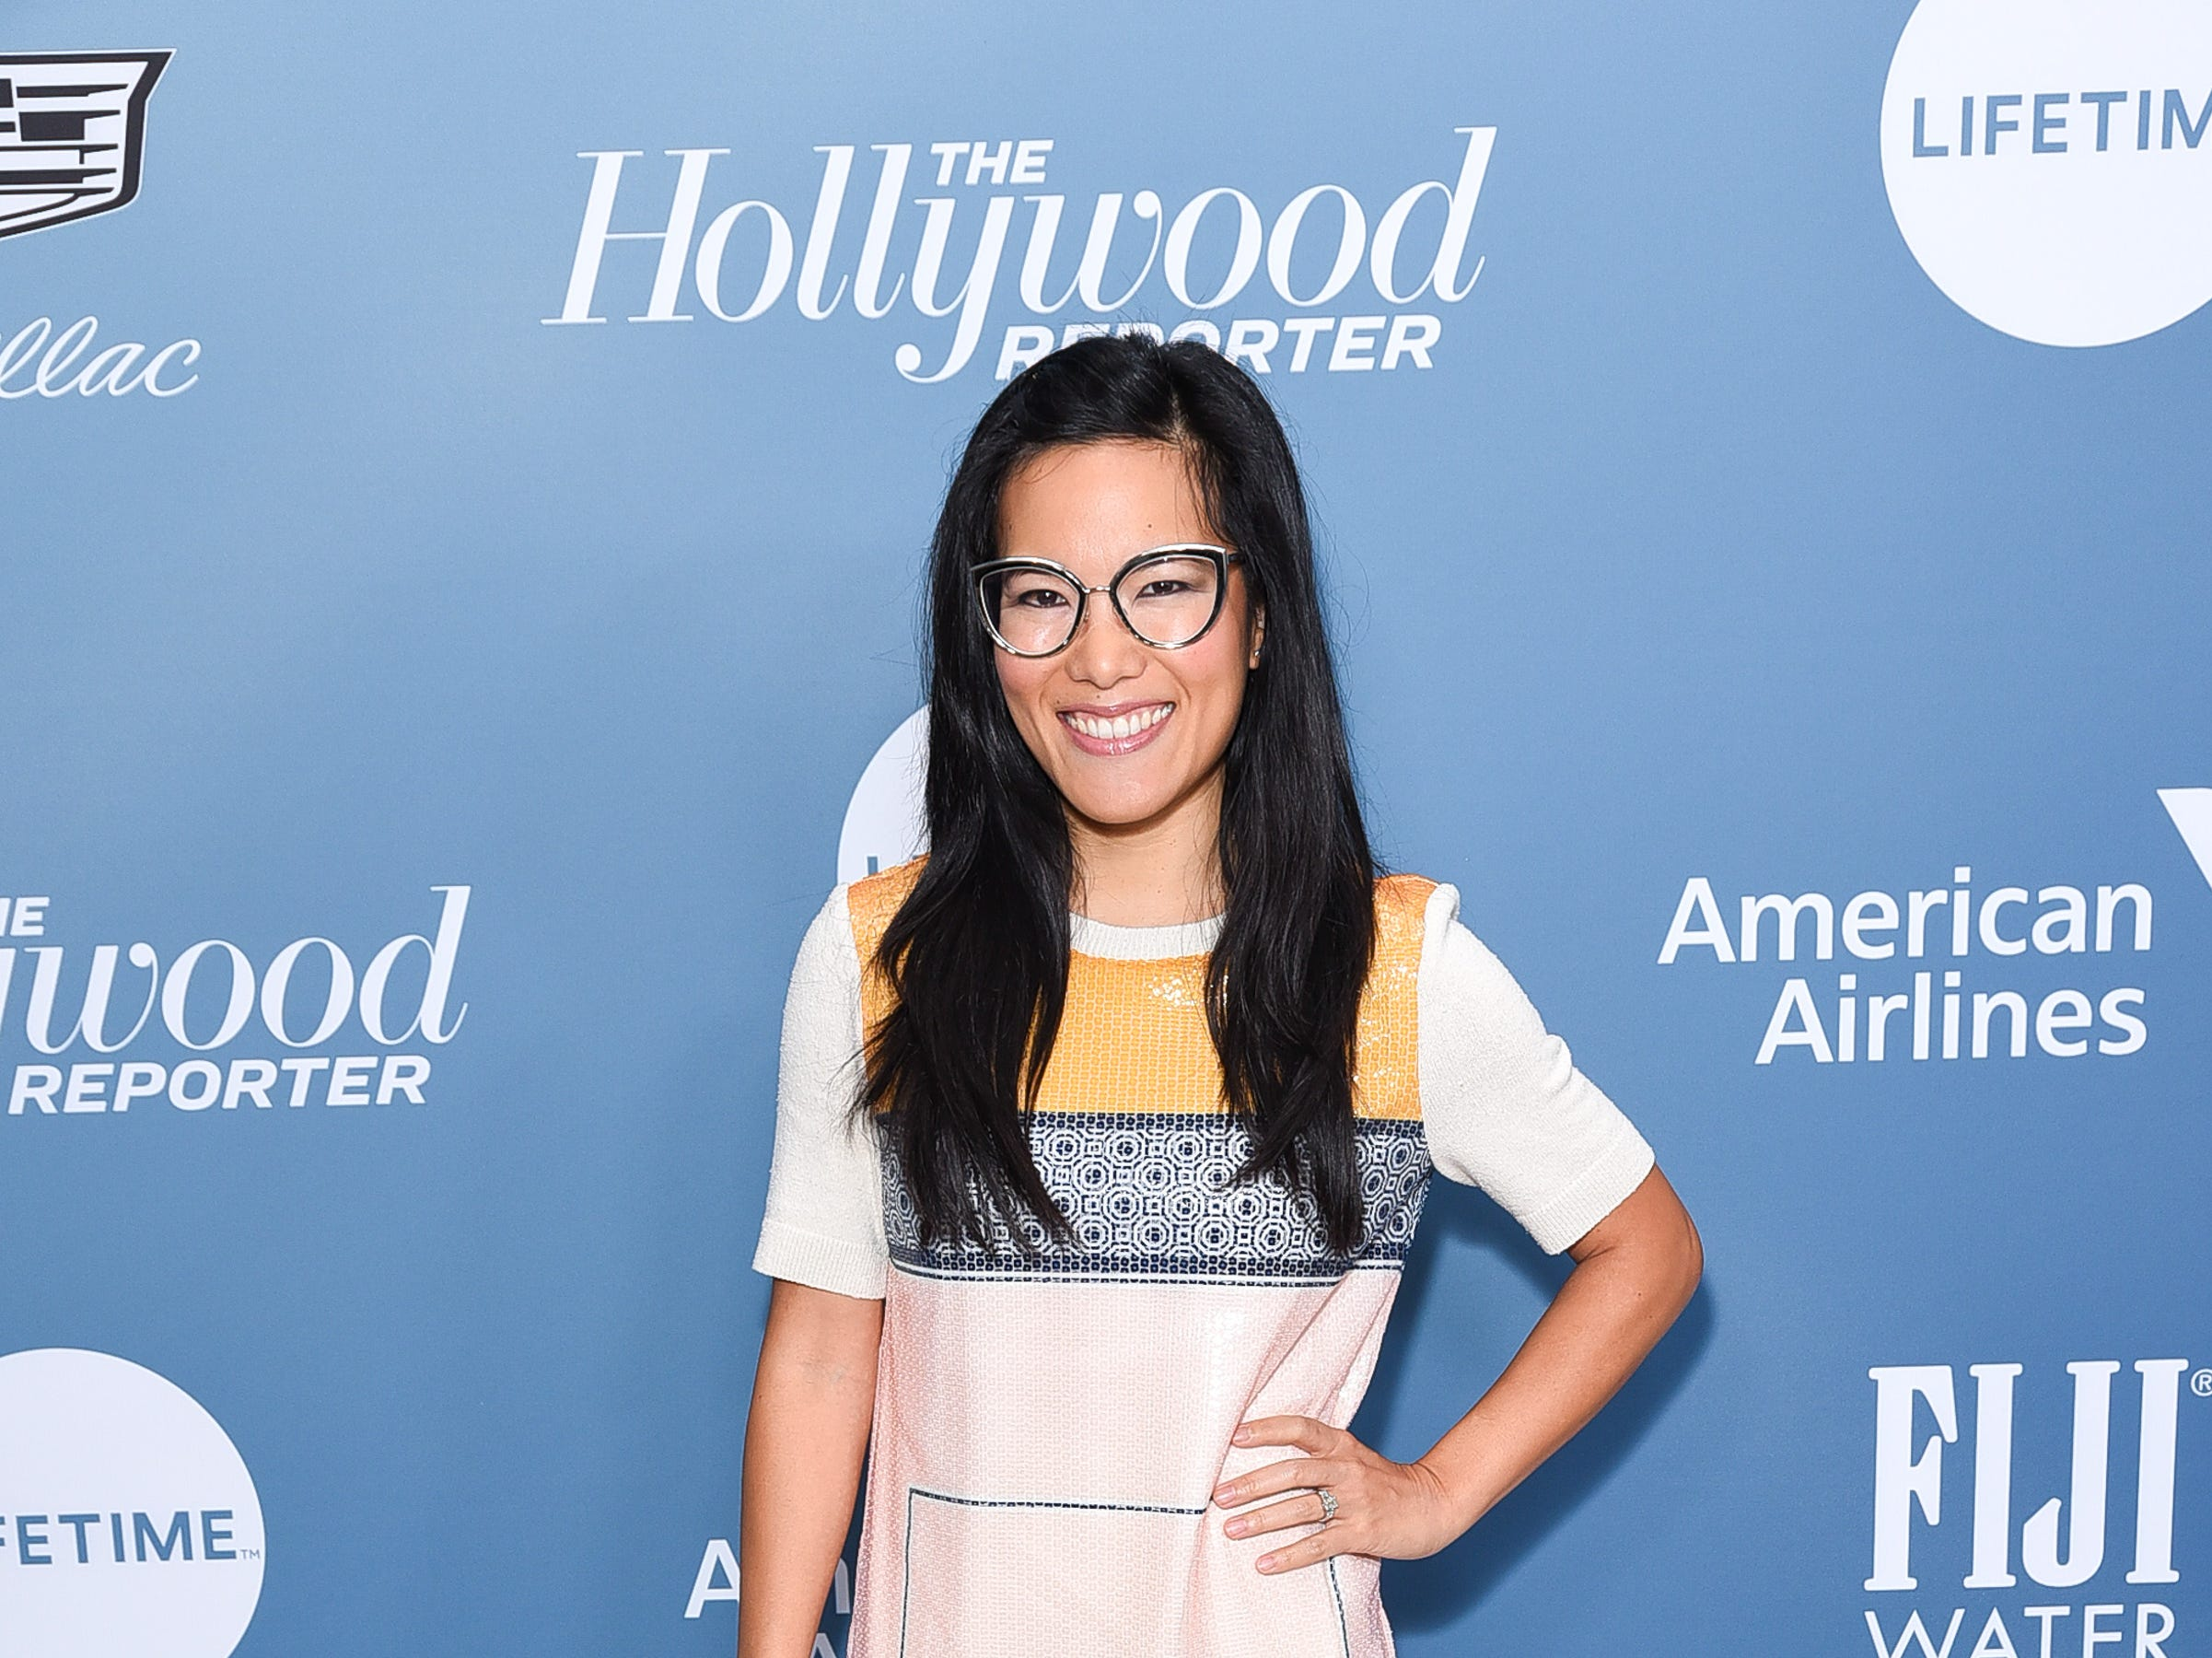 LOS ANGELES, CALIFORNIA - DECEMBER 05: Ali Wong attends The Hollywood Reporter's Power 100 Women In Entertainment at Milk Studios on December 05, 2018 in Los Angeles, California. (Photo by Presley Ann/Getty Images) ORG XMIT: 775264723 ORIG FILE ID: 1077815782